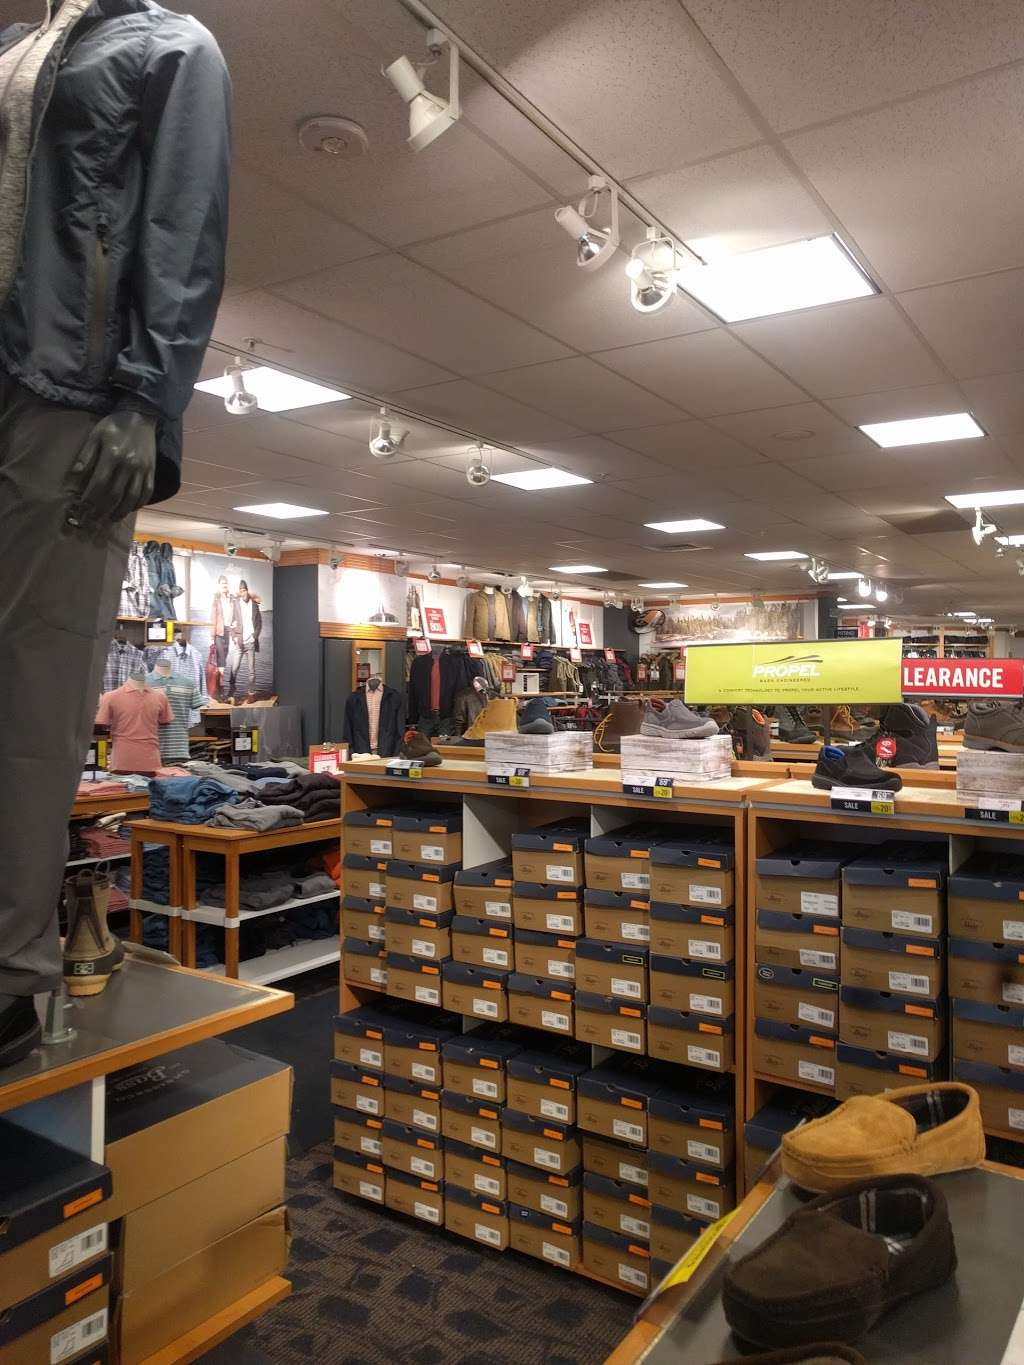 Bass Factory Outlet - shoe store    Photo 1 of 6   Address: 270 Voice Rd, Carle Place, NY 11514, USA   Phone: (516) 248-2720